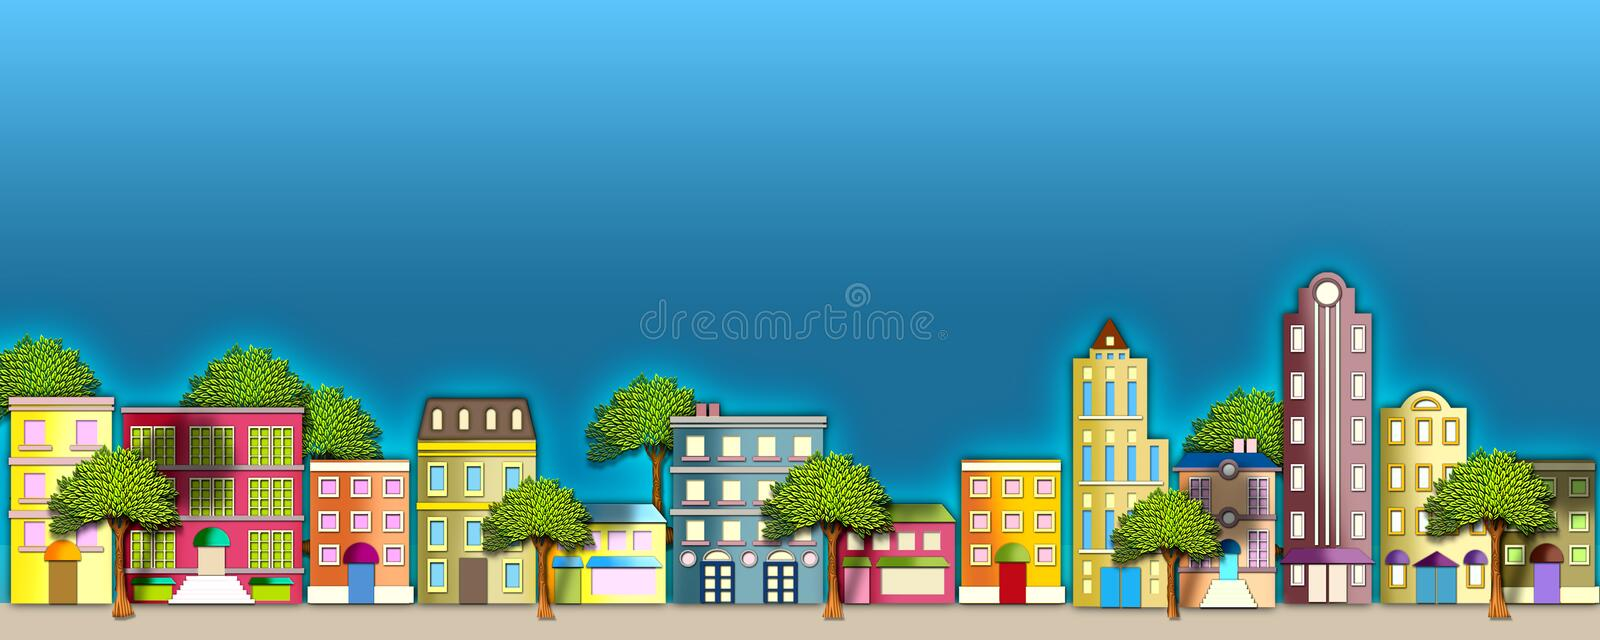 Neighborhood illustration. A colorful illustration of a quaint street scene with apartment houses & beautiful trees